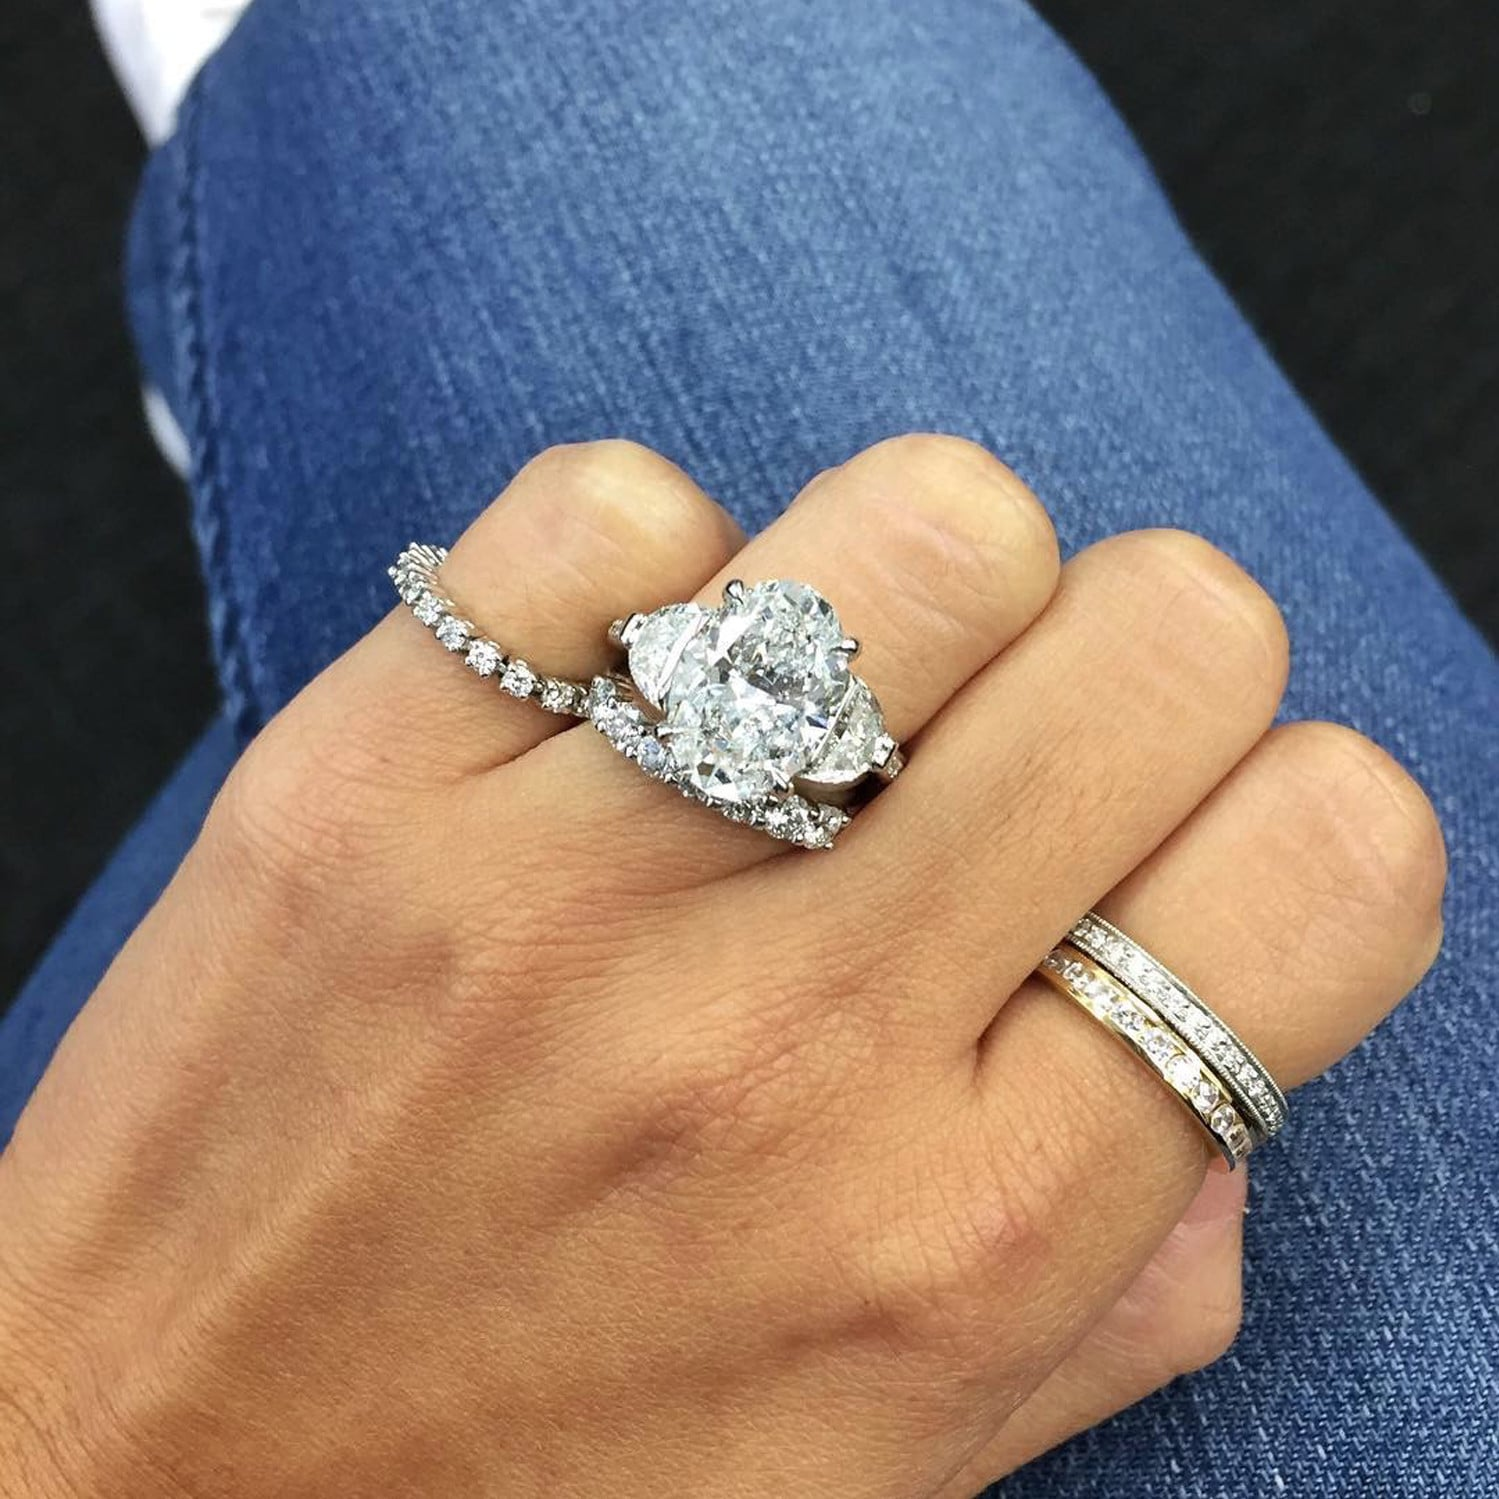 setting the verragio diamond far and rings my this gorgeous so someday beautiful love in absolutely ring favorite maybe dreams pin detail elegant by engagement